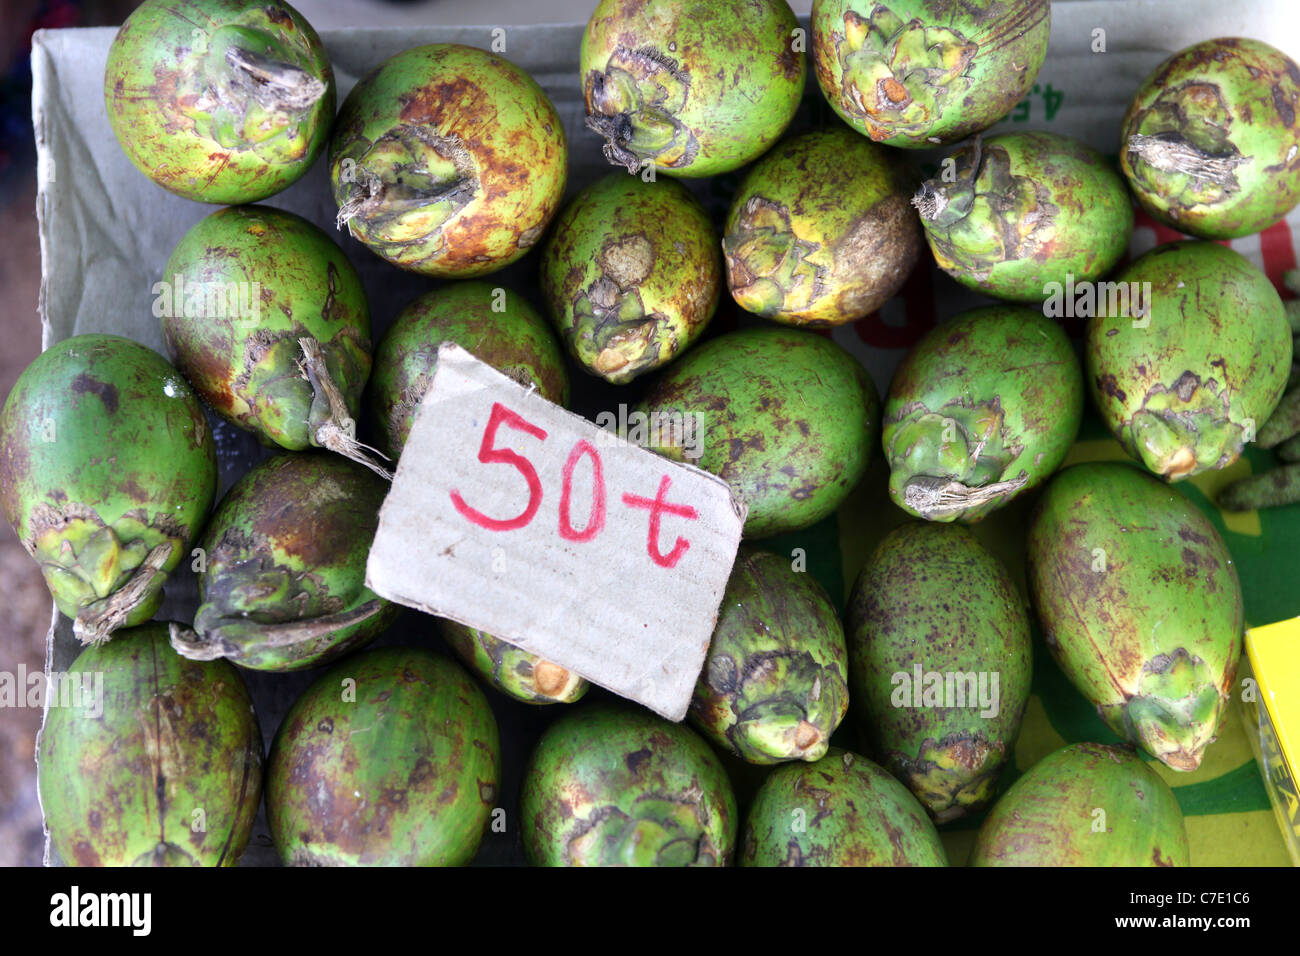 Betel nut for sale, with 50 Toea sign (0,5 Kina, cost of one nut). Papua New Guinea - Stock Image